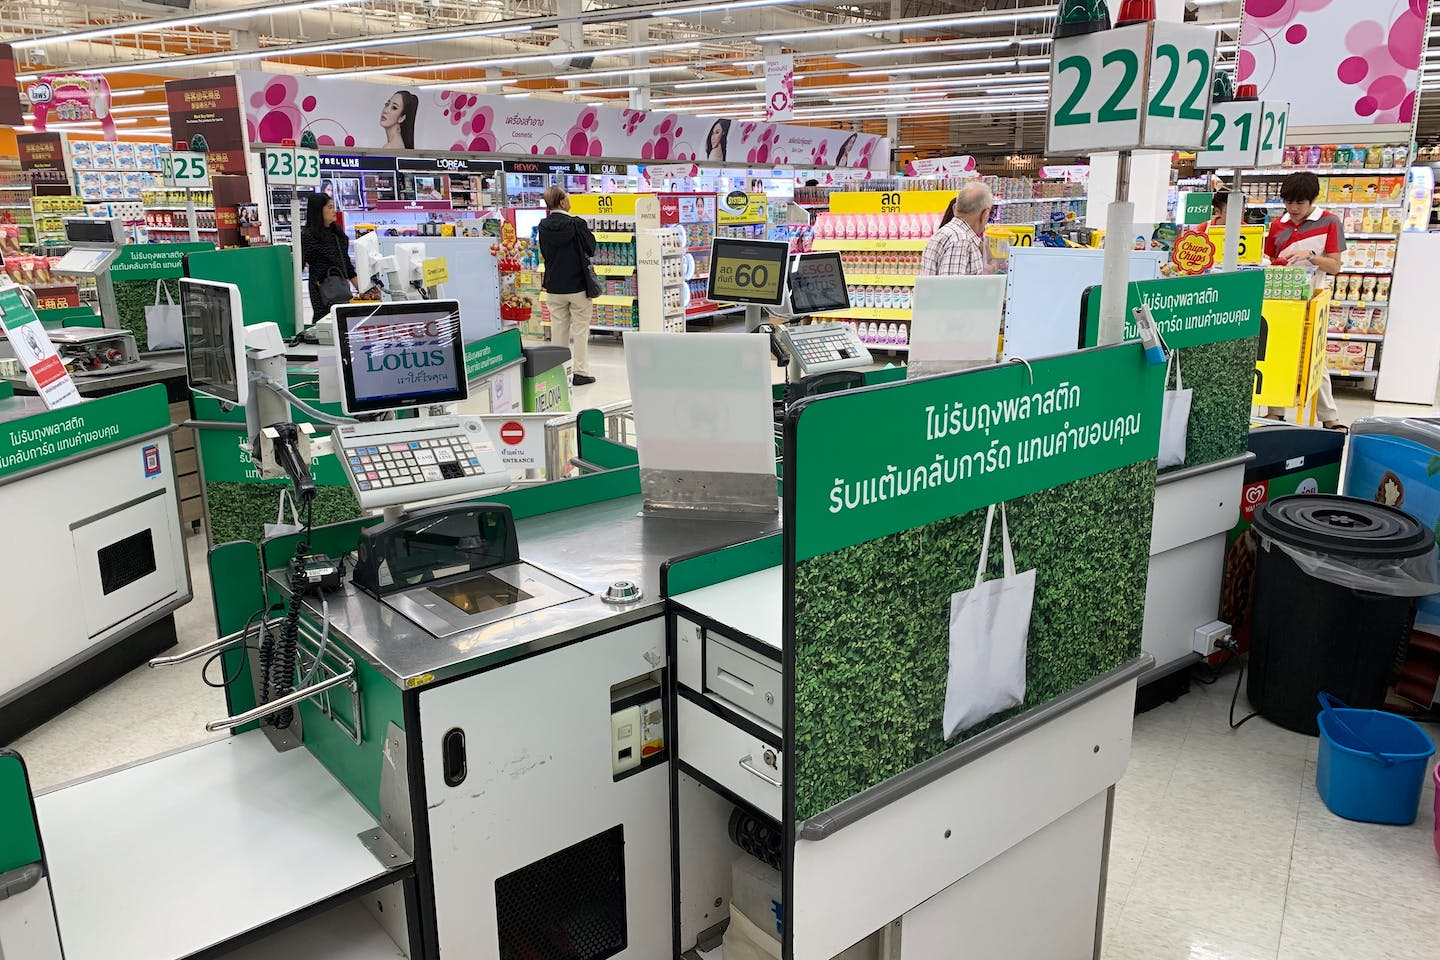 A plastic bag-free shopping aisle at a Tesco Lotus supermarket in On Nut, Bangkok. Image: Eco-Business